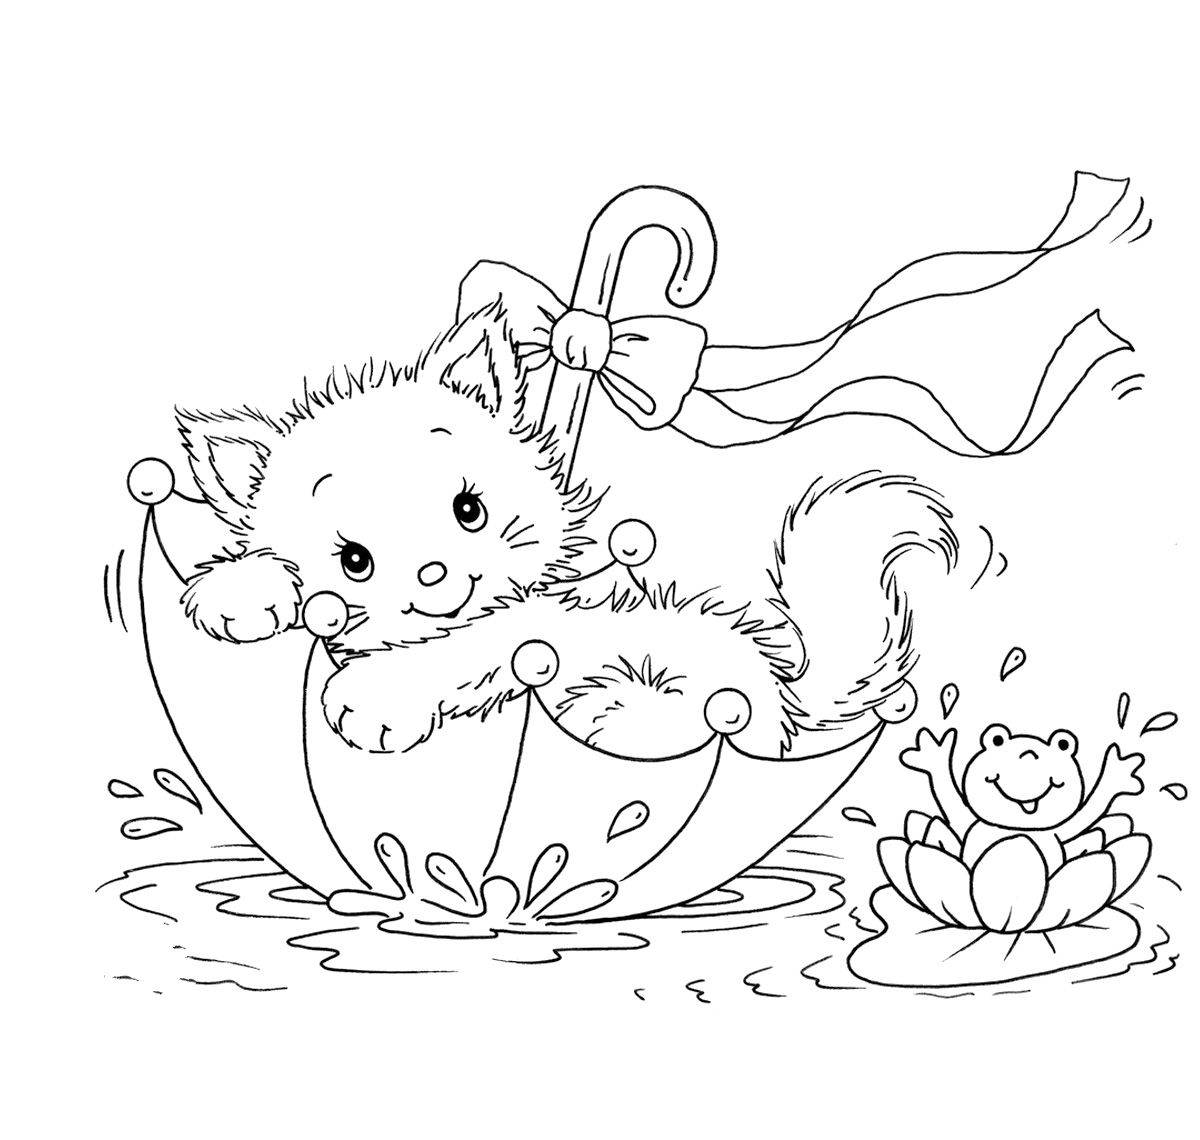 kitty cat and frog in umbrella coloring pages coloring pictures